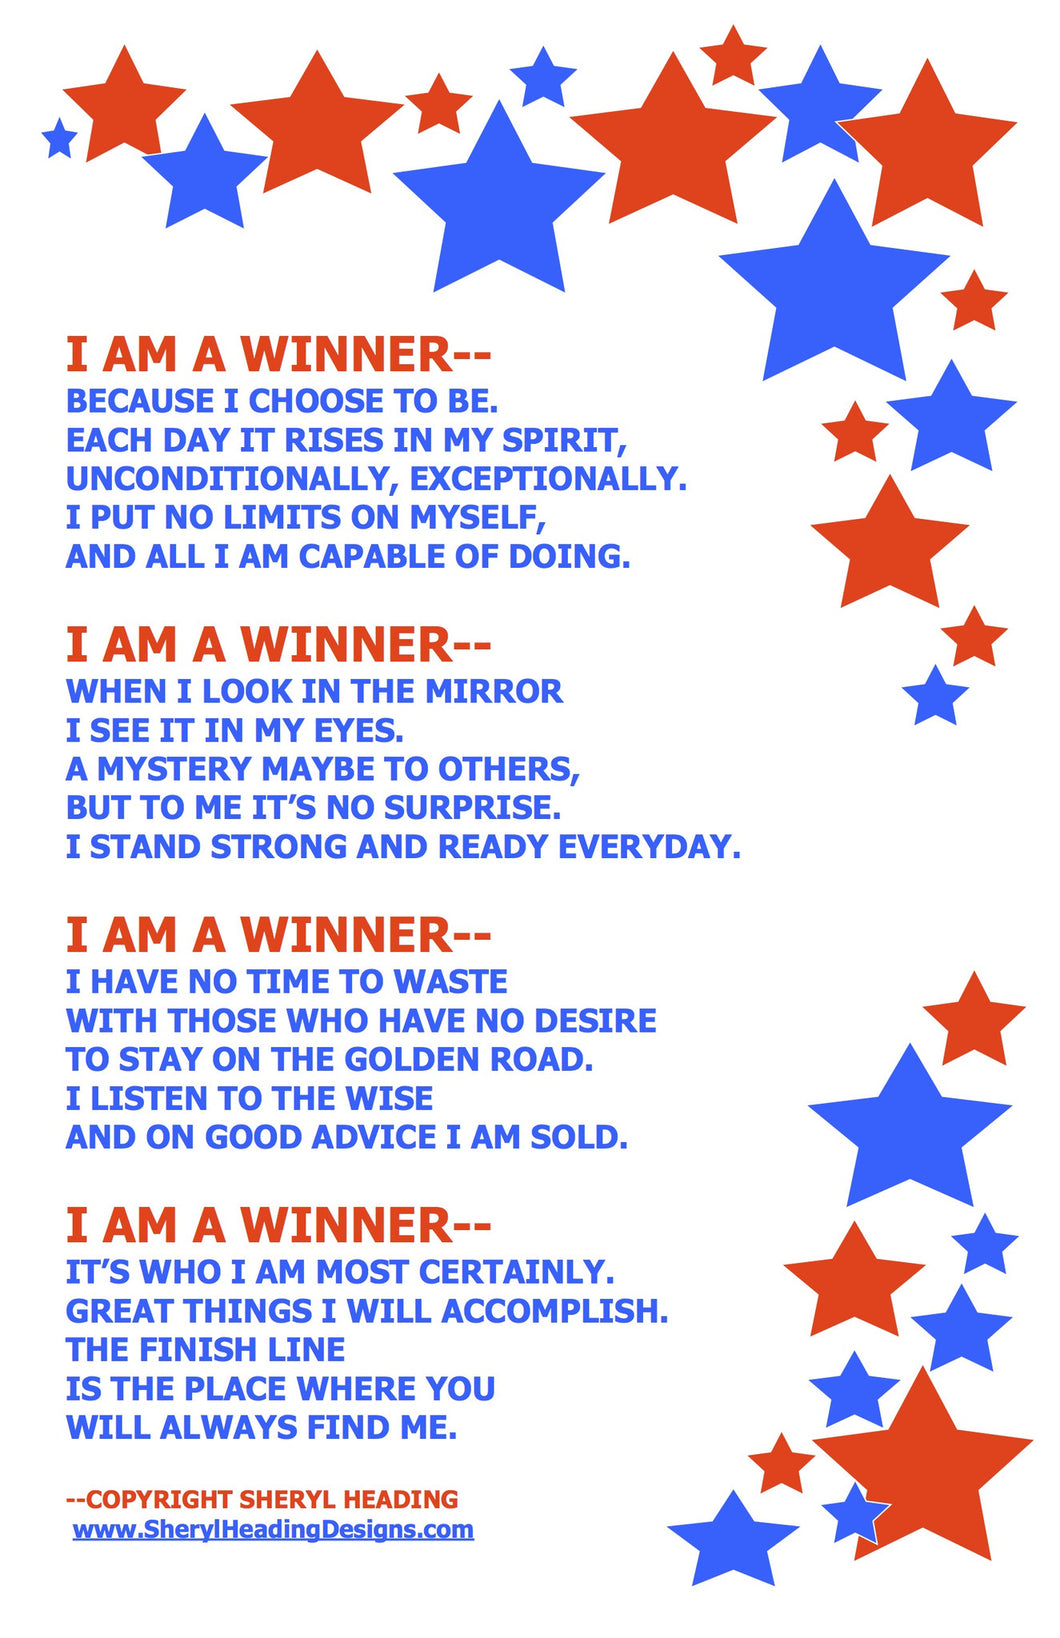 I Am A Winner Poster - Sheryl Heading Designs